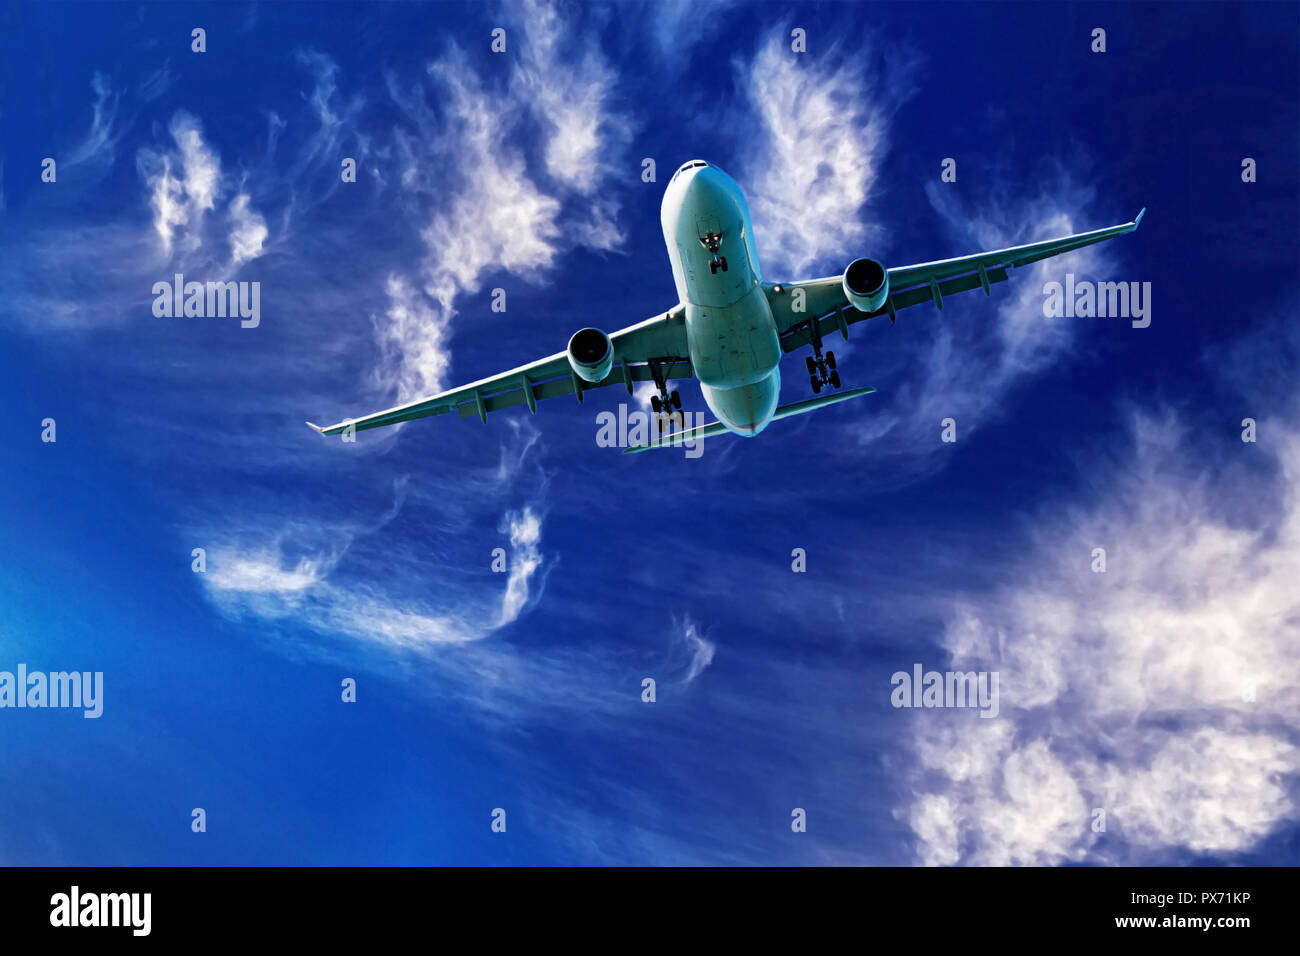 A closeup skyscape view of a commercial passenger jet aircraft flyng in a vibrant blue sky, with bright white coloured wispy cirrus clouds. Australia. - Stock Image